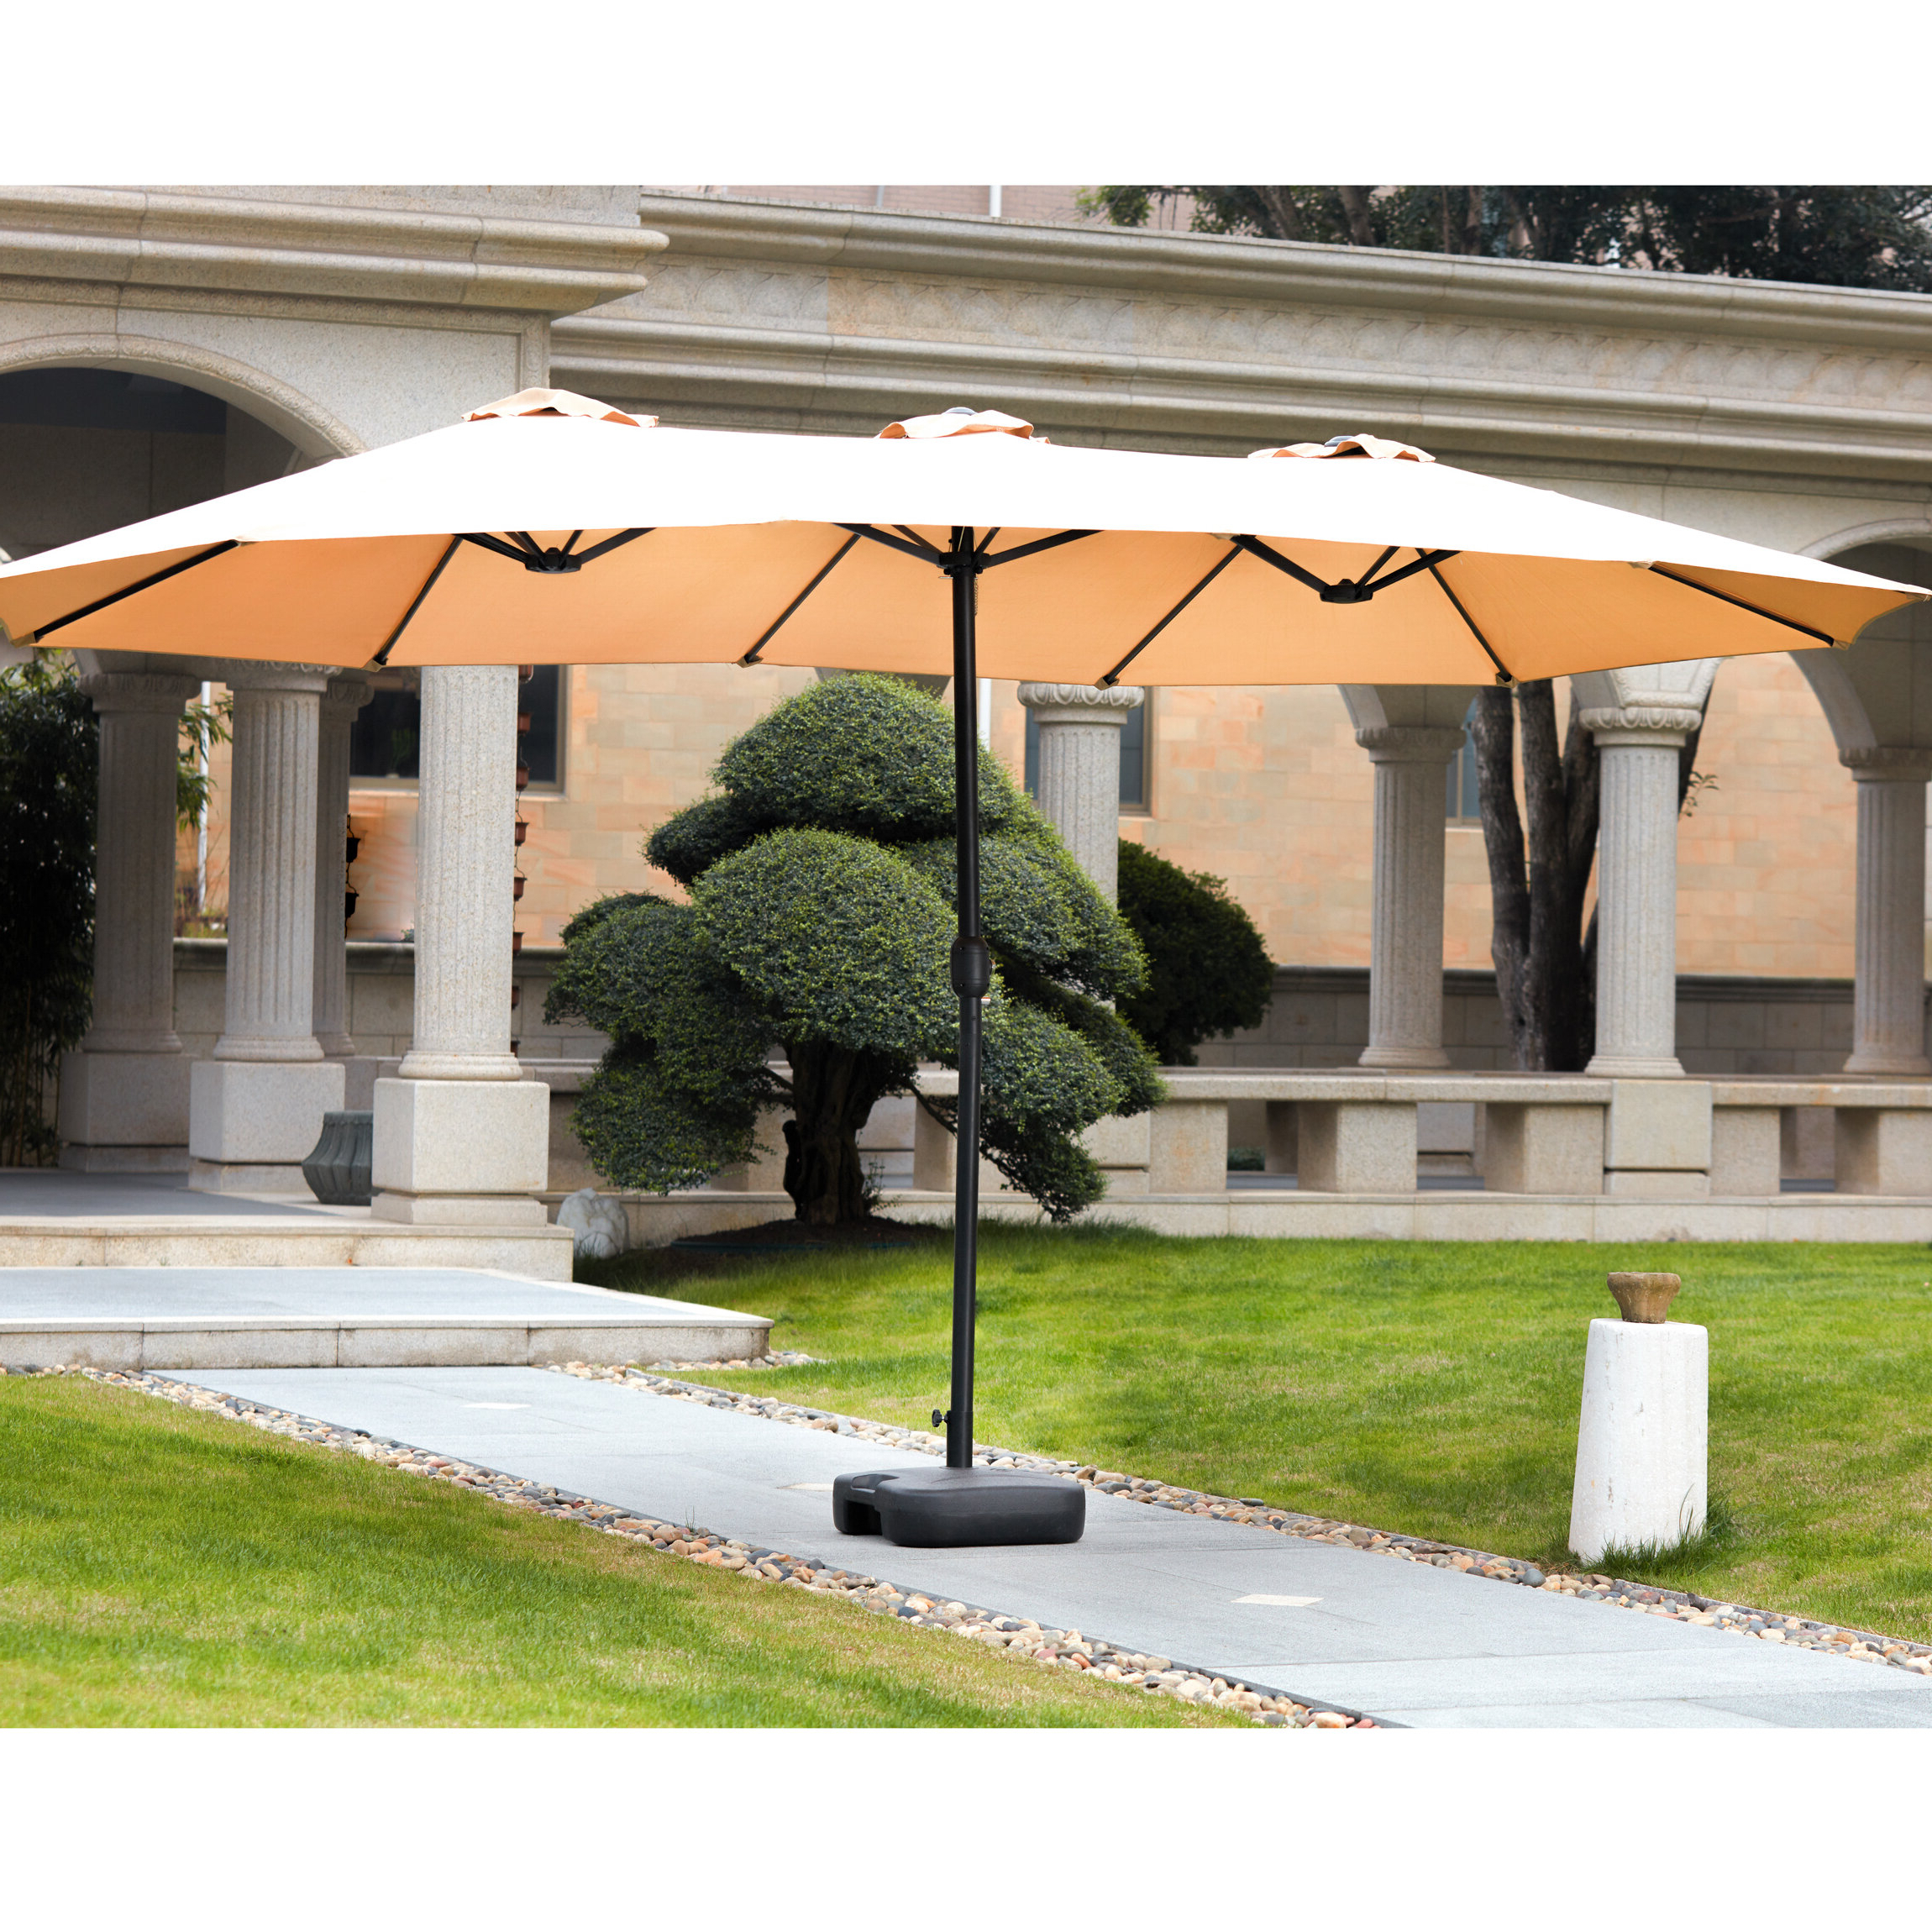 Widely Used Eisele 9' W X 15' D Rectangular Market Umbrella With Regard To Eisele Rectangular Market Umbrellas (View 3 of 20)